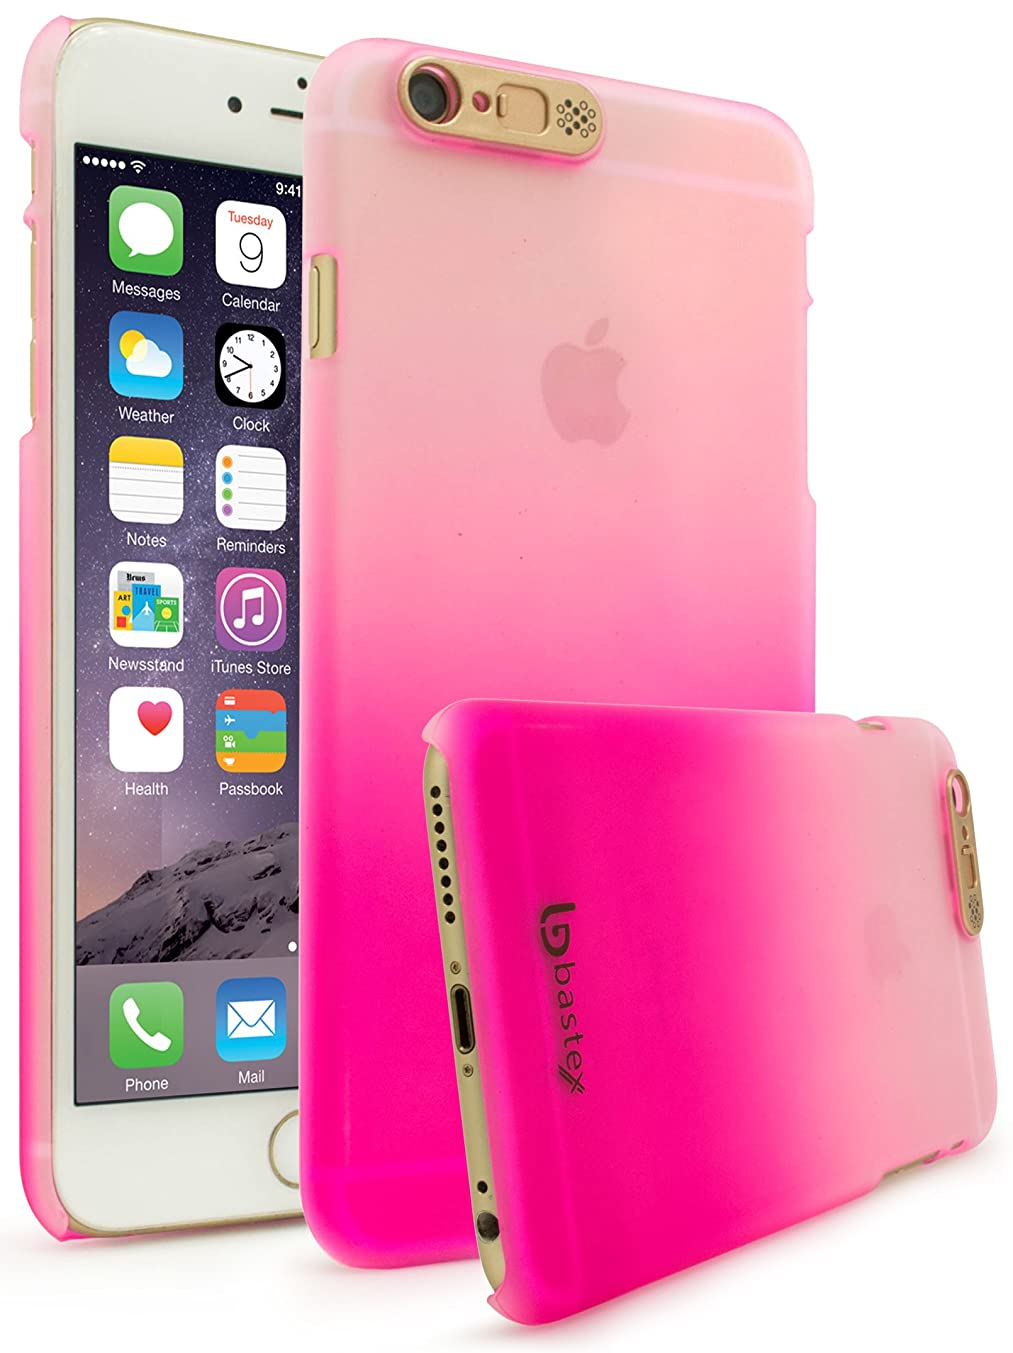 iPhone 6 / 6s Case, Bastex Slim Fit Frosted Fade White to Pink Hard Plastic Snap-On Case Cover with LED Flash Function for Apple iPhone 6 , iPhone 6s